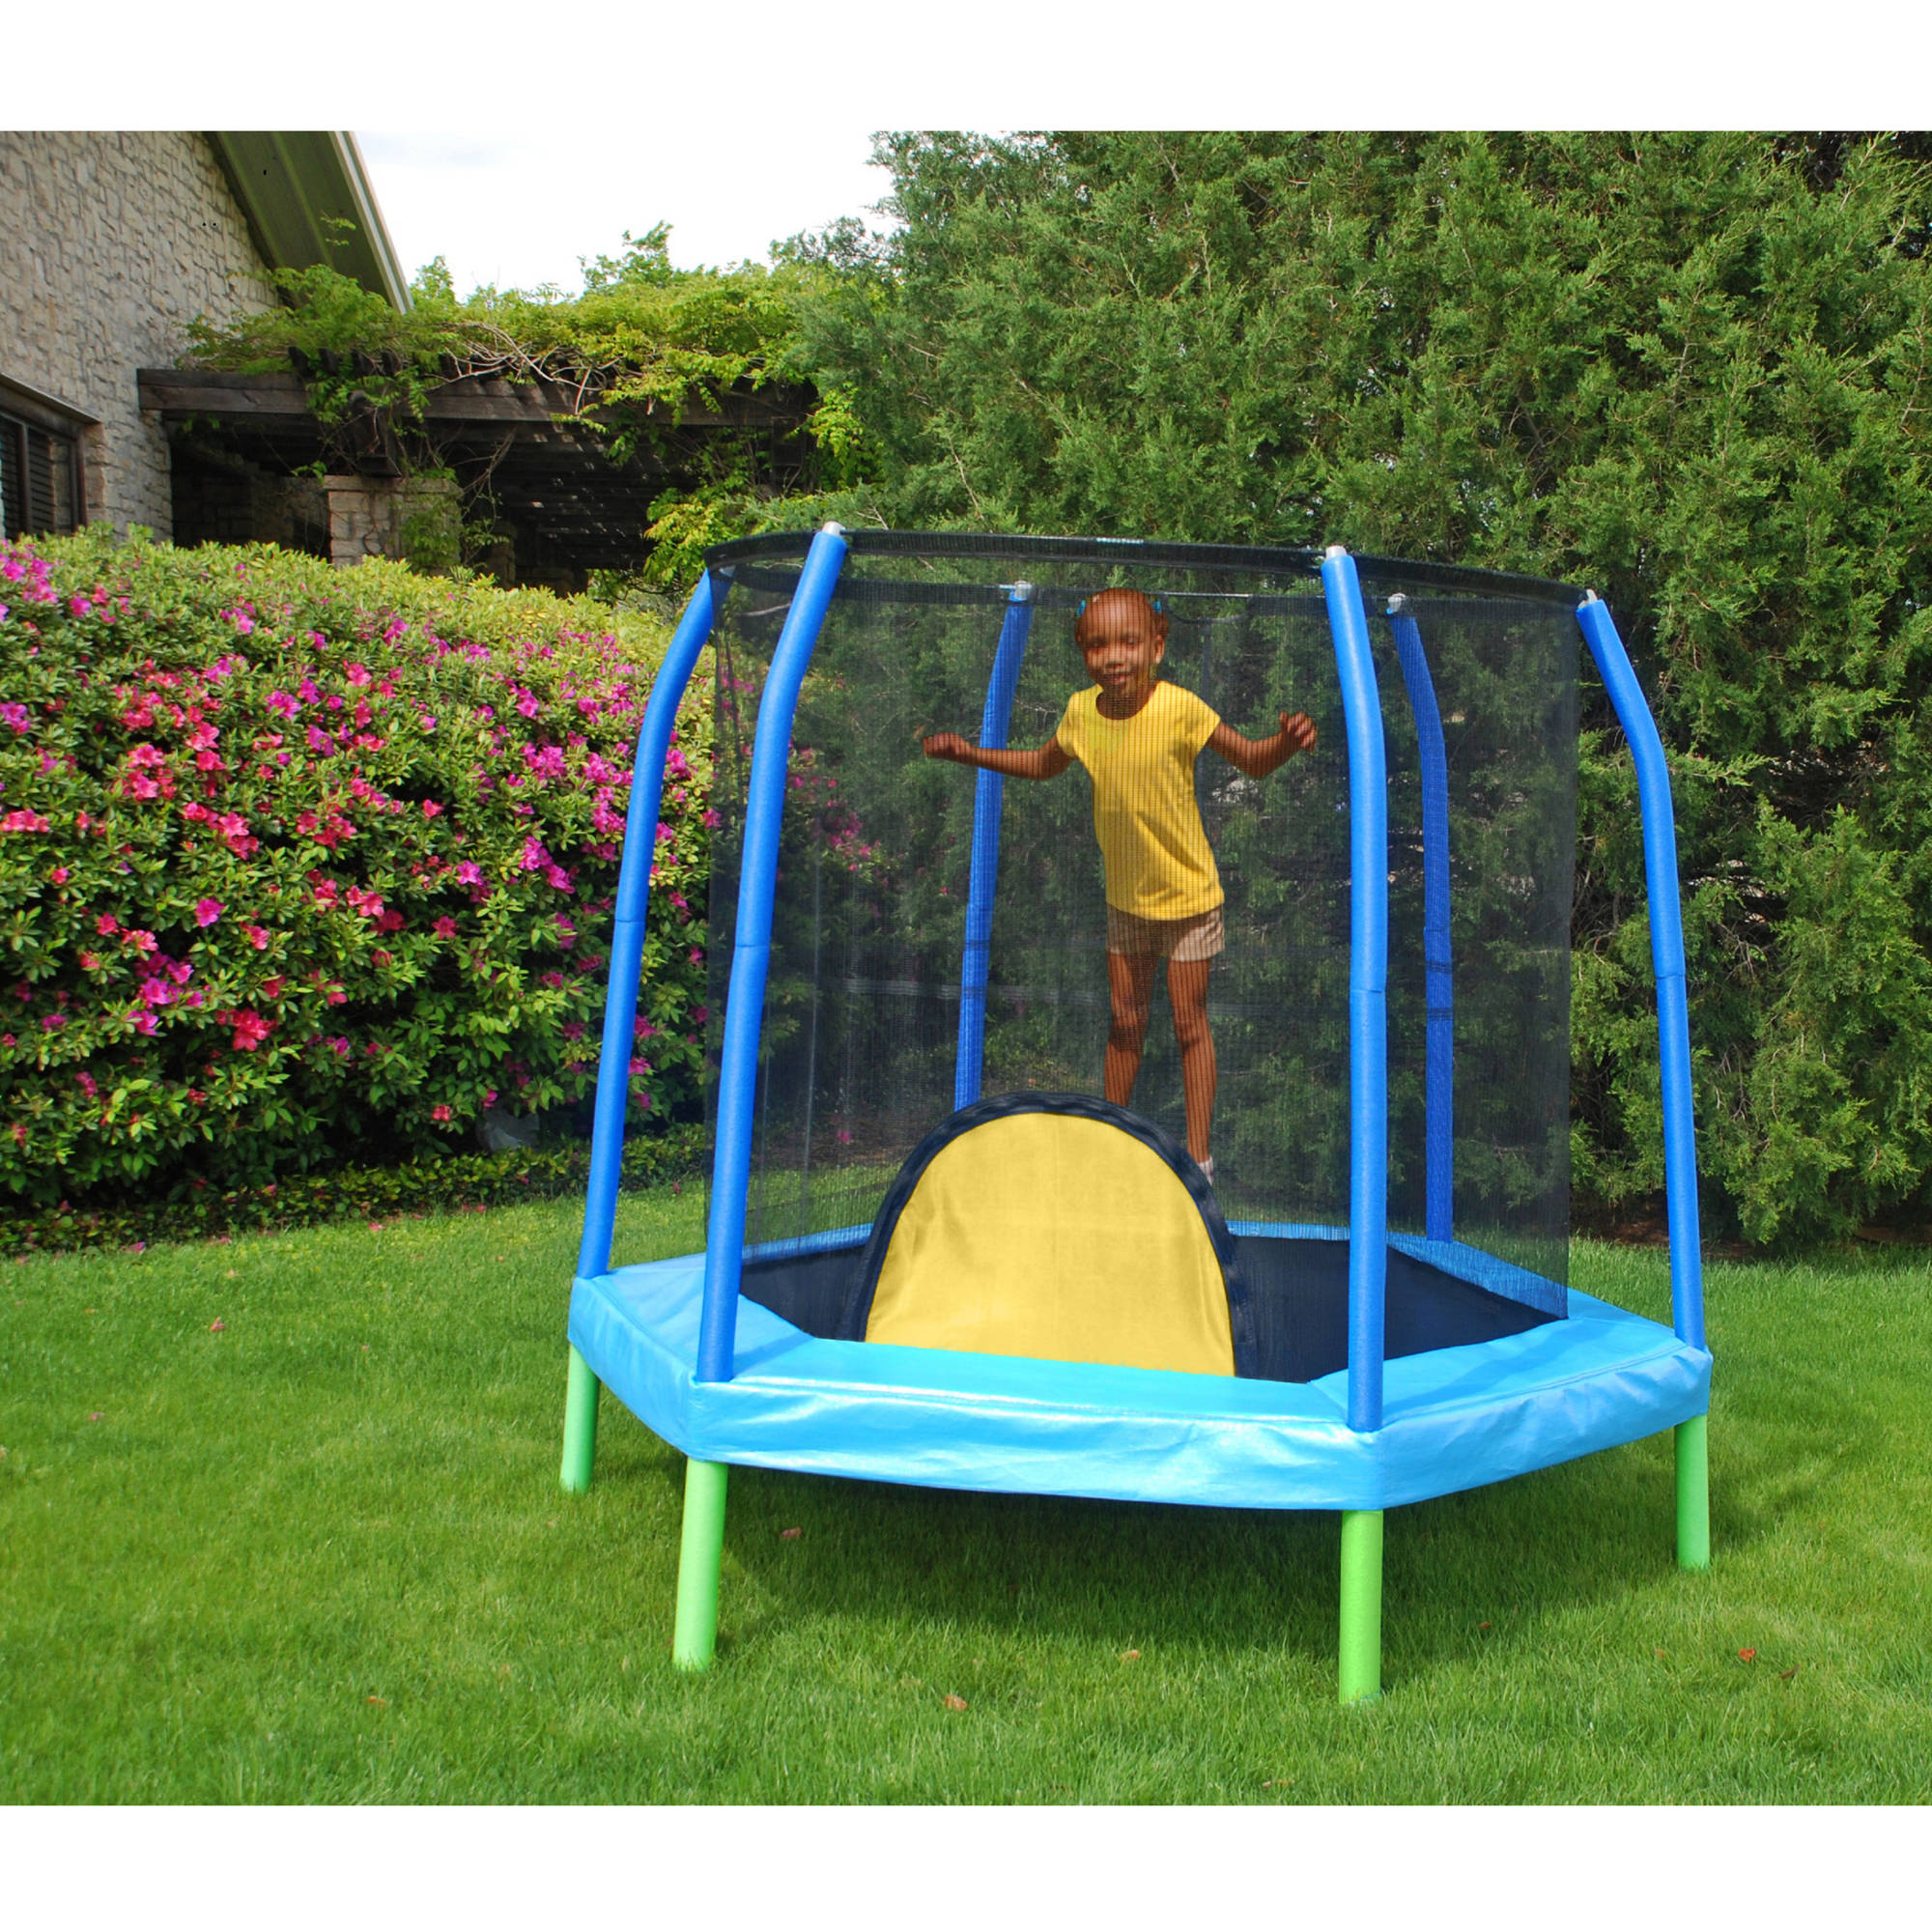 Bazoongi 7.5' Hexagonal Kids Combo Trampoline and Enclosure